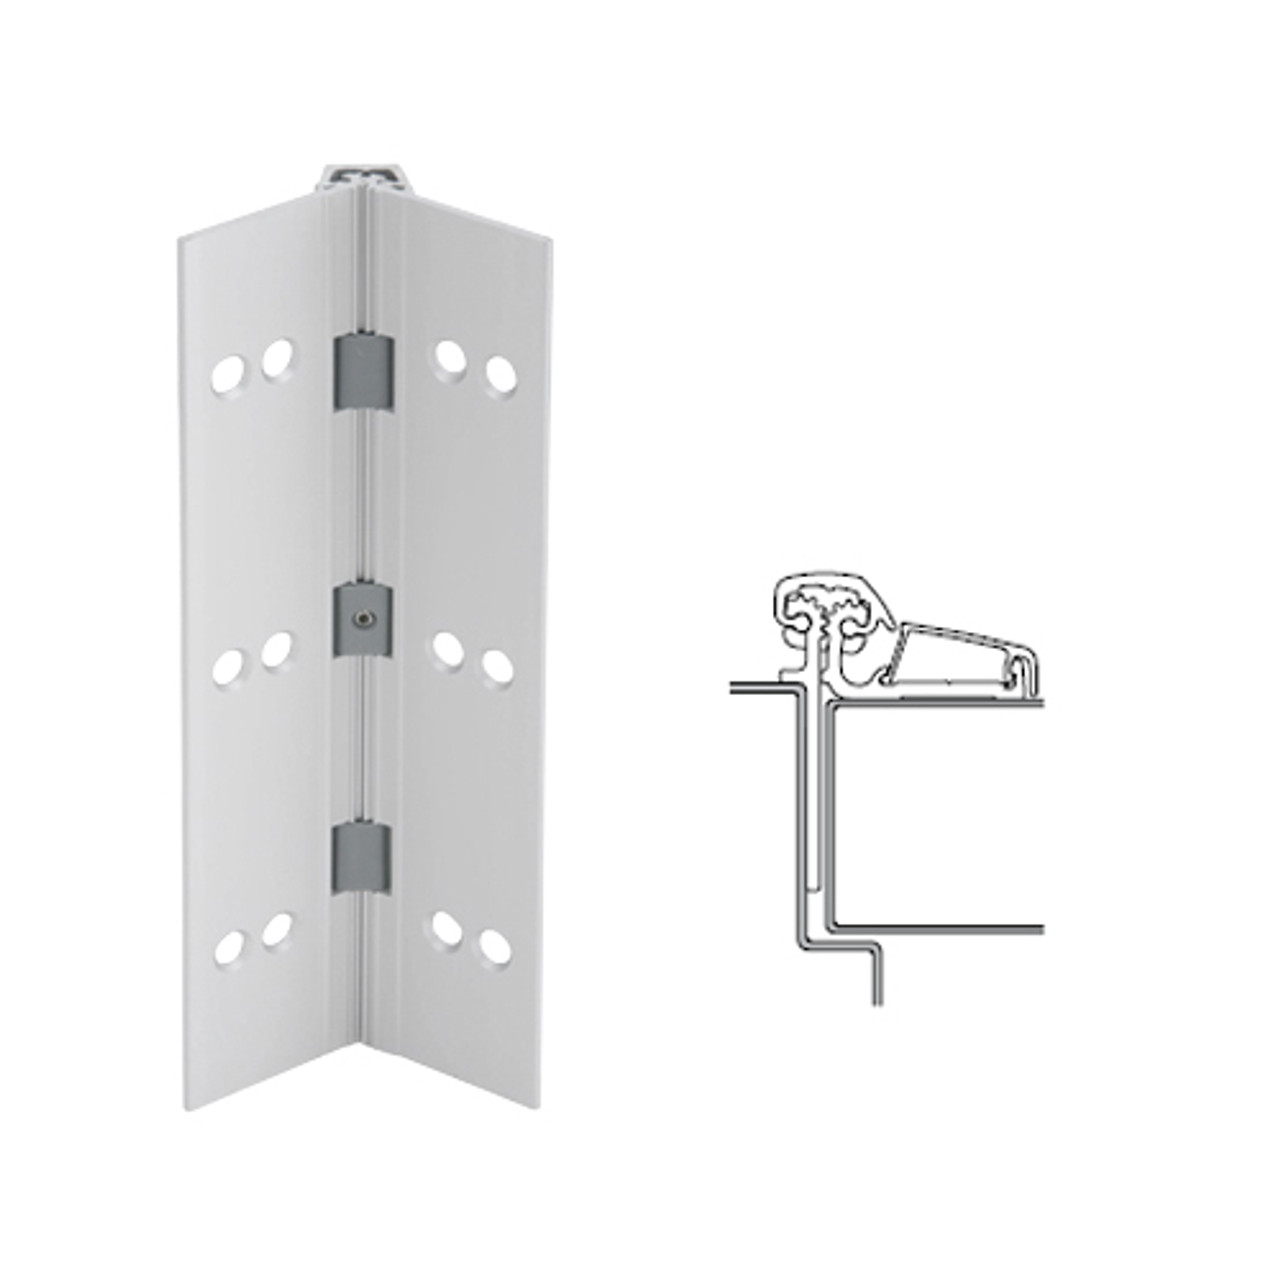 053XY-US28-95-TEKWD IVES Adjustable Half Surface Continuous Geared Hinges with Wood Screws in Satin Aluminum